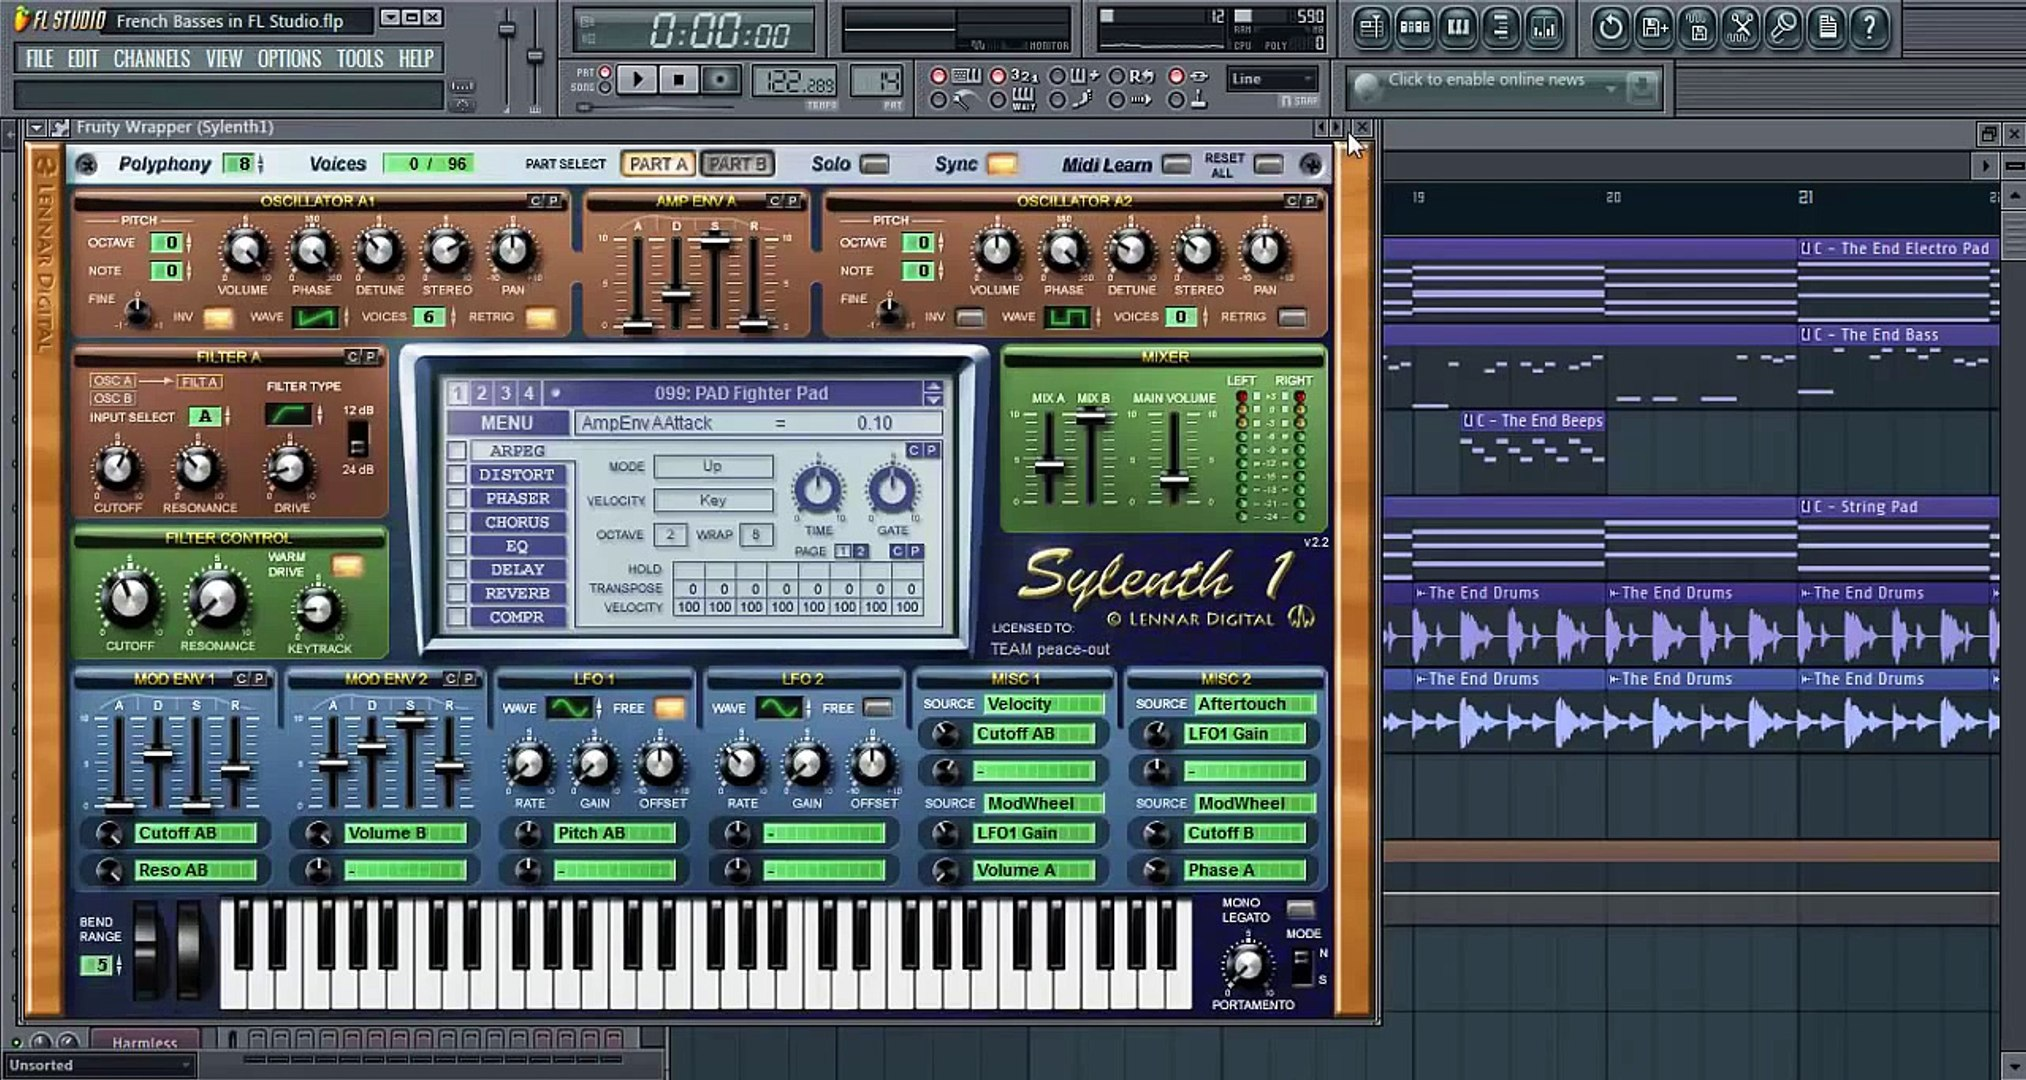 The French House Bass in FL Studio